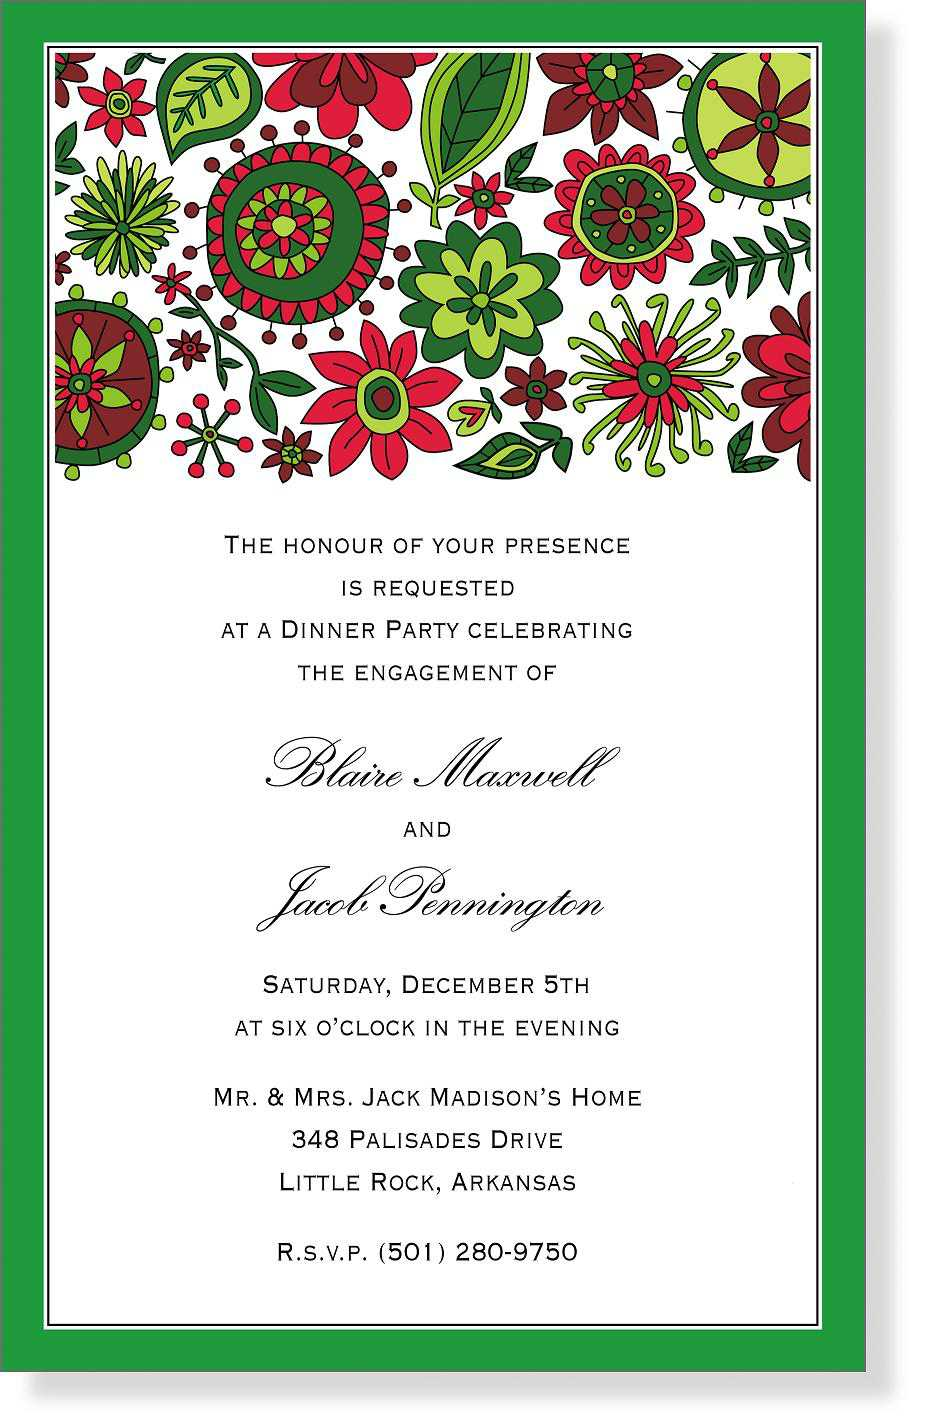 Sample christmas invitations targergolden dragon sample christmas invitations stopboris Gallery